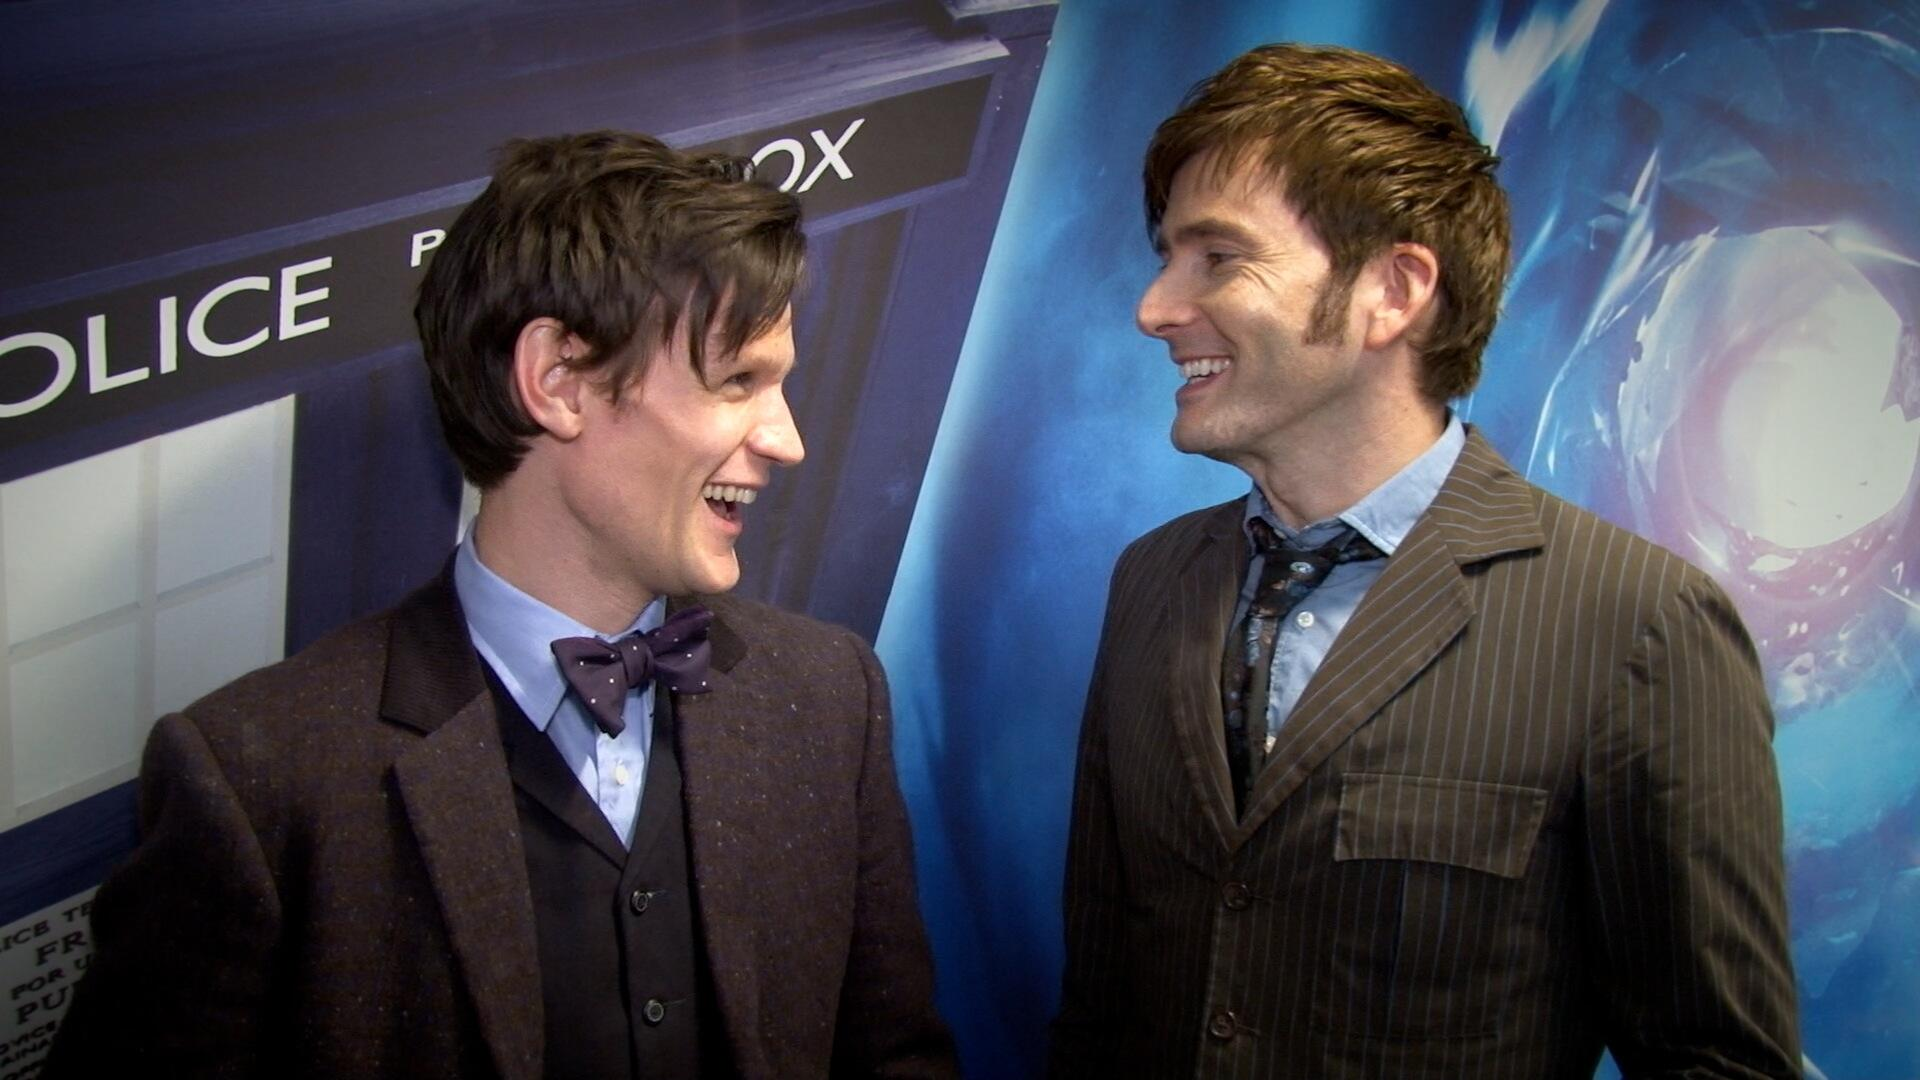 David Tennant and Matt Smith